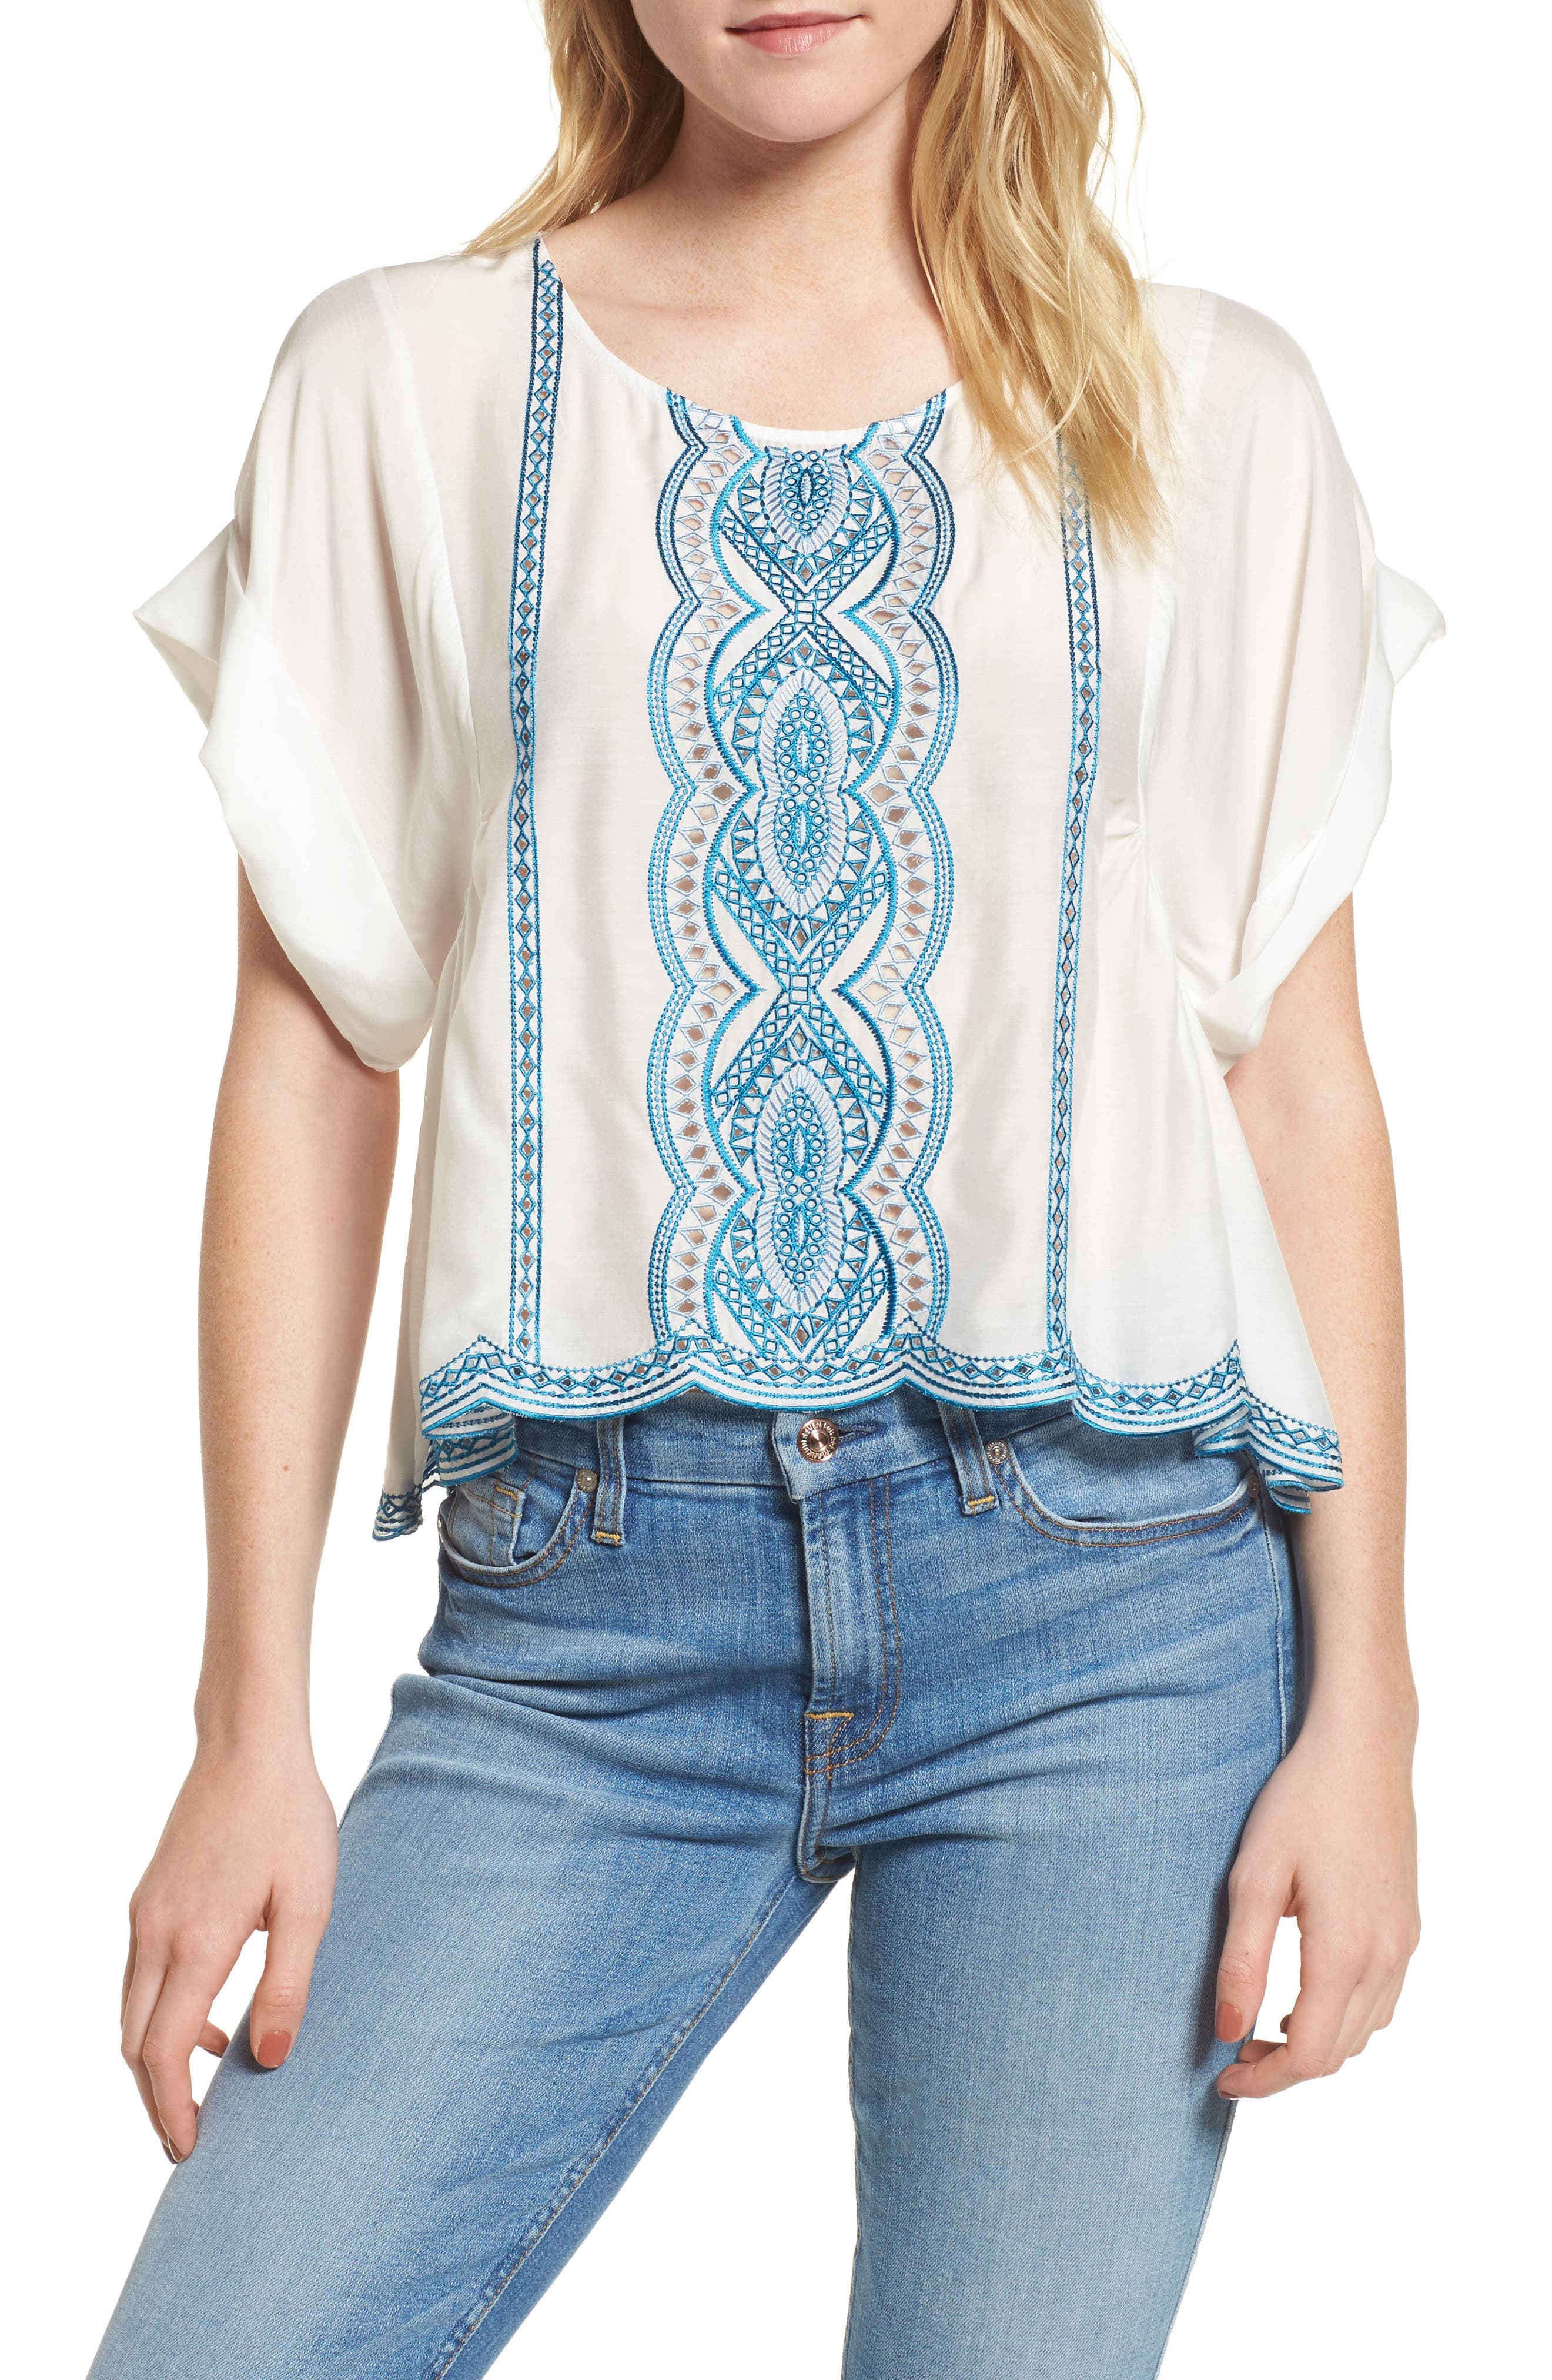 Ella Moss Embroidered Top